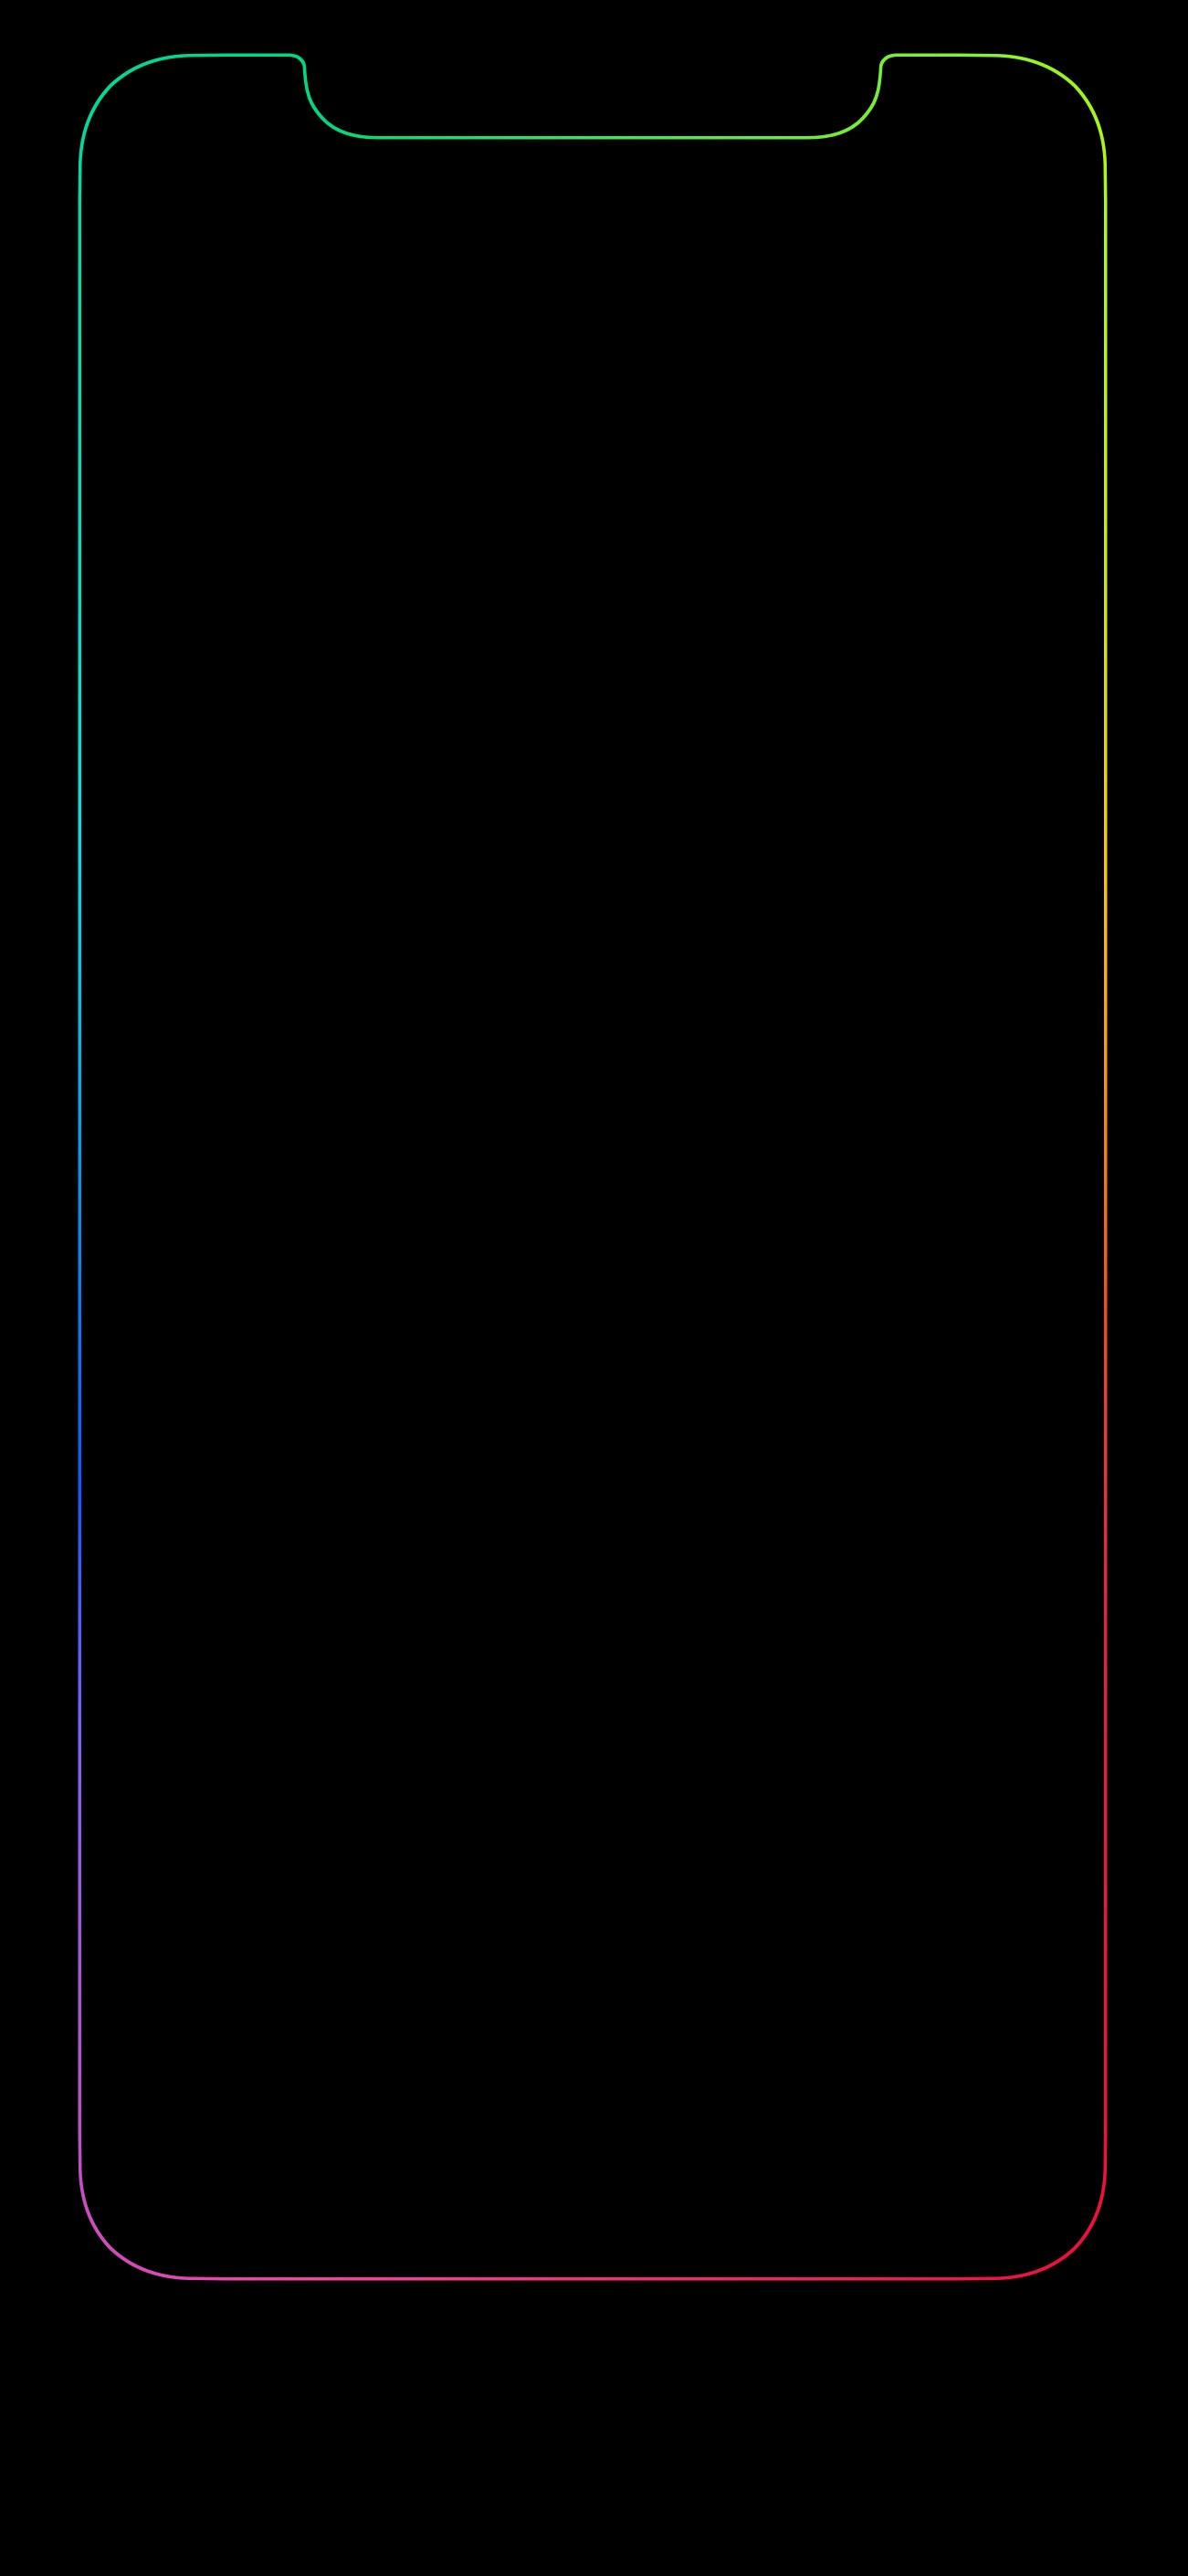 Iphone Notch Wallpapers Top Free Iphone Notch Backgrounds Wallpaperaccess